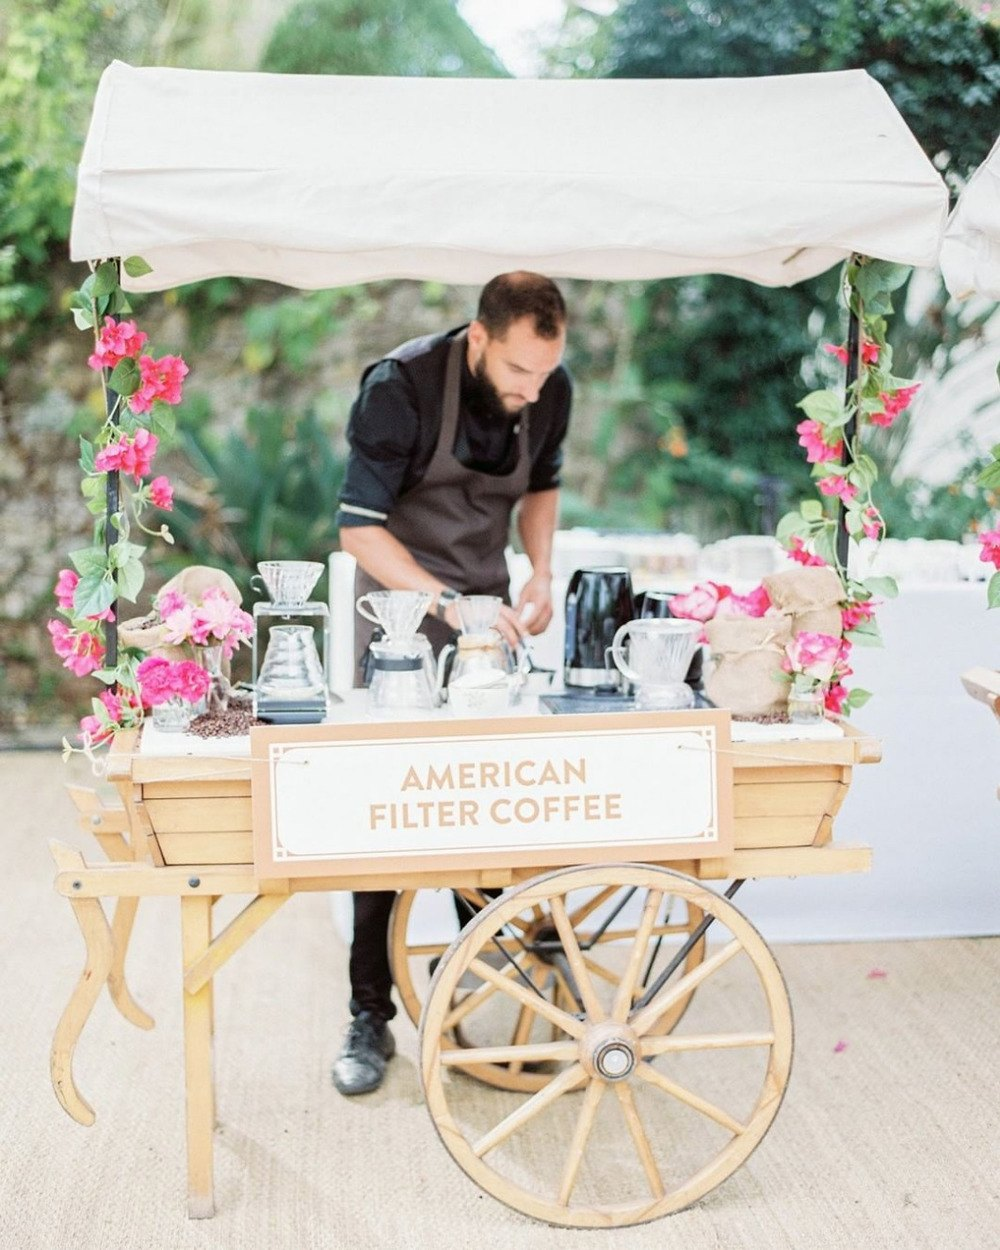 Unique Wedding Ideas.8 Unique Wedding Entertainment Ideas To Wow Your Guests Ruffled